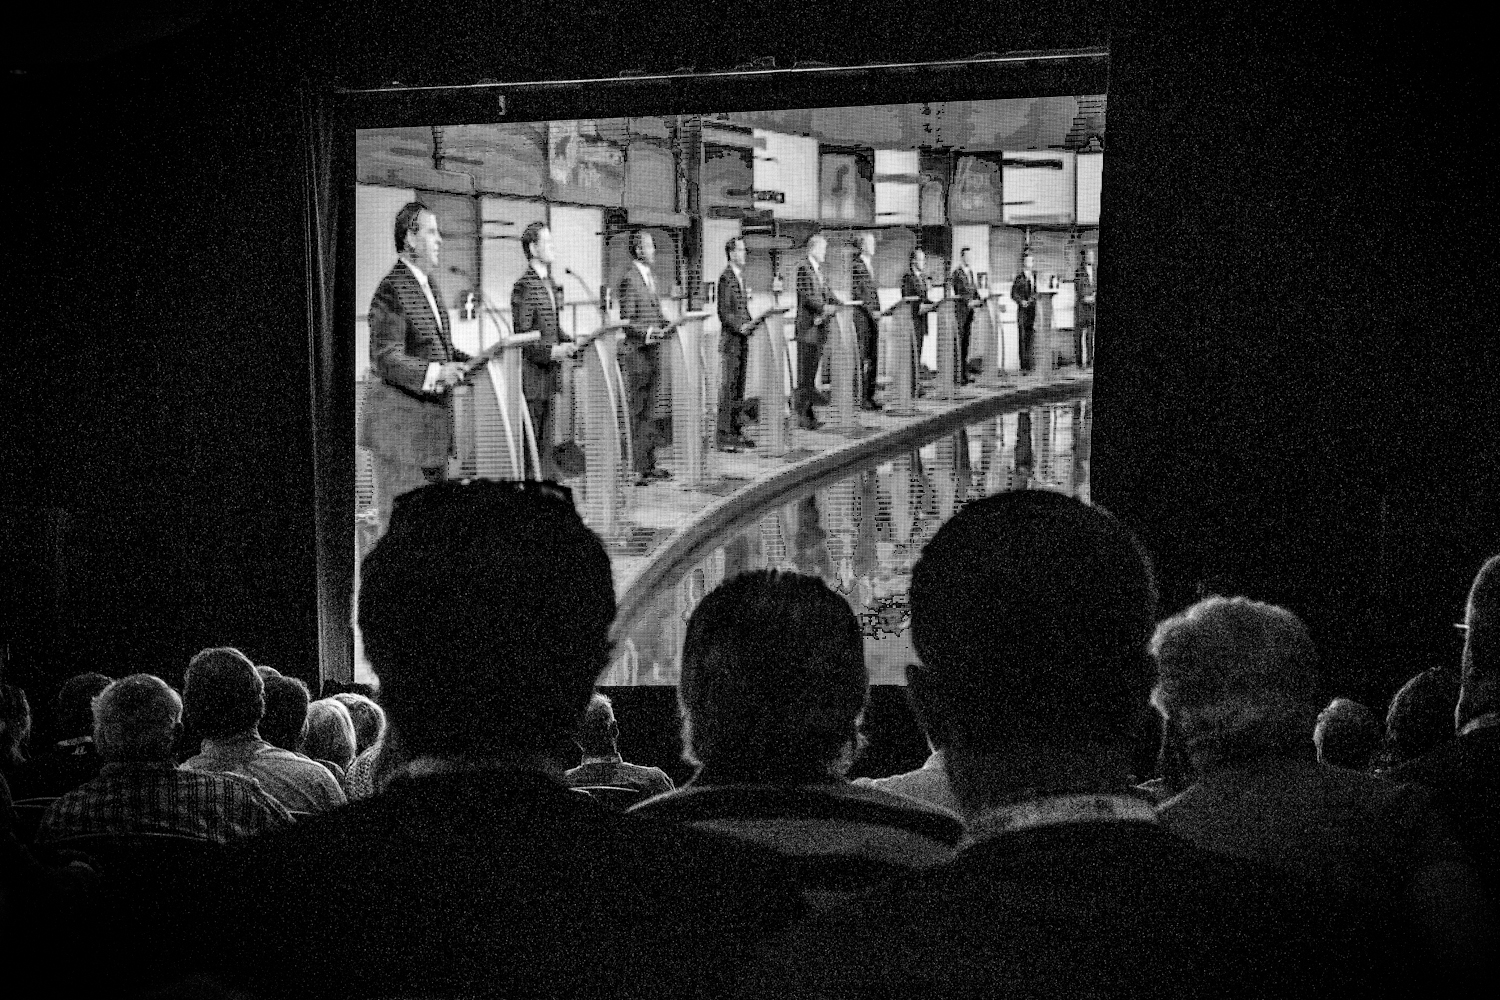 Attendees at the RedState Gathering watch the first 2016 Republican presidential debate,                               which took place in Cleveland, Ohio. Atlanta, Georgia, Aug. 6, 2016.